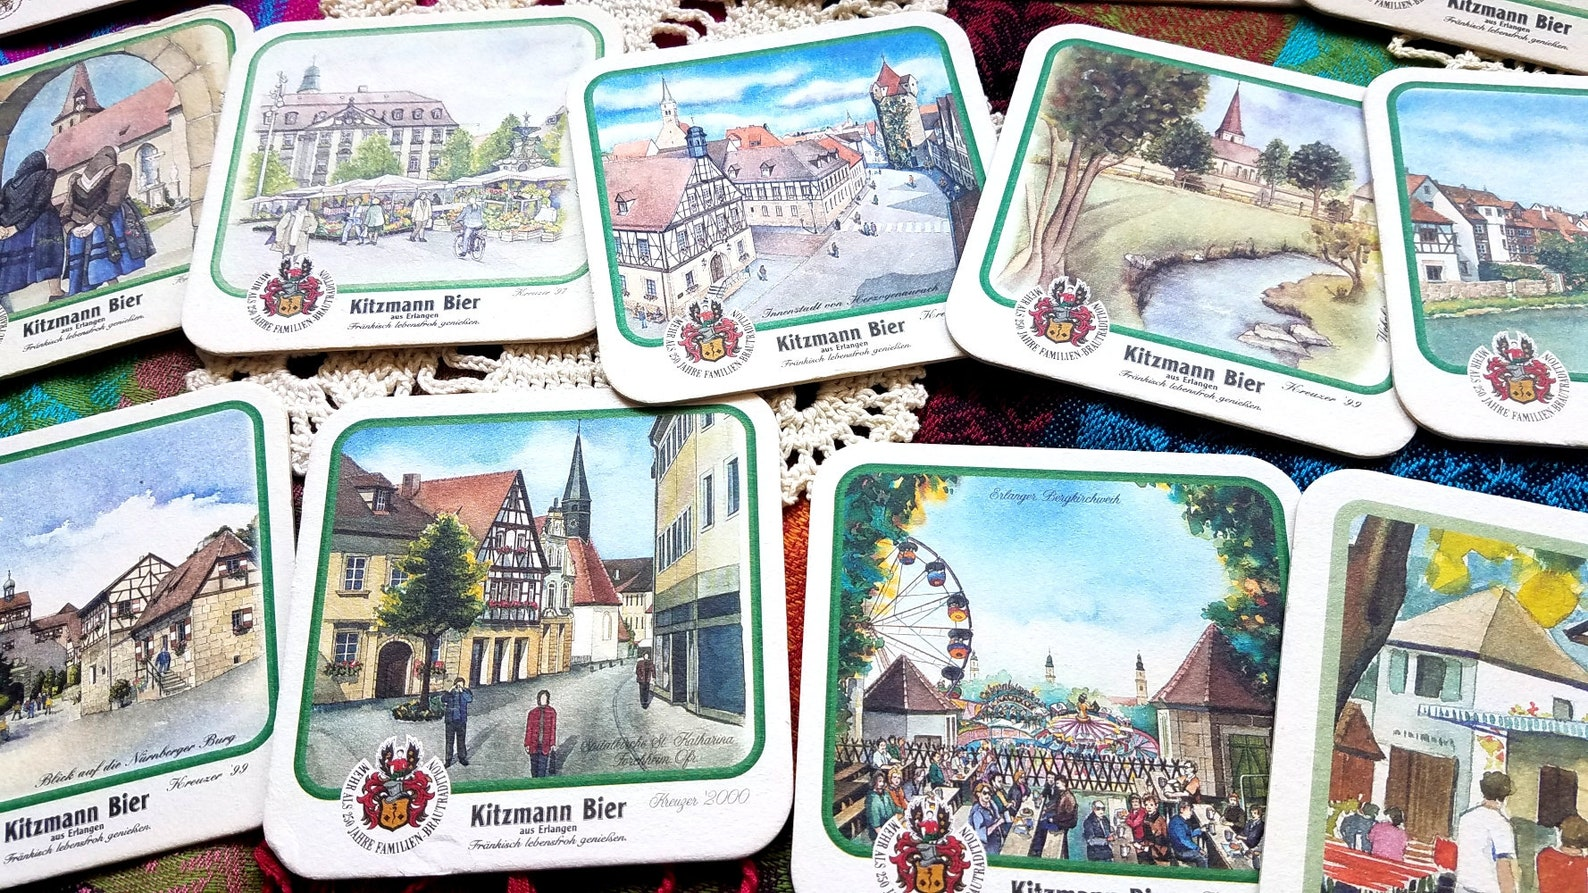 Set of 14 Collectible Vintage German Beer Coasters with Rare Architectural Design